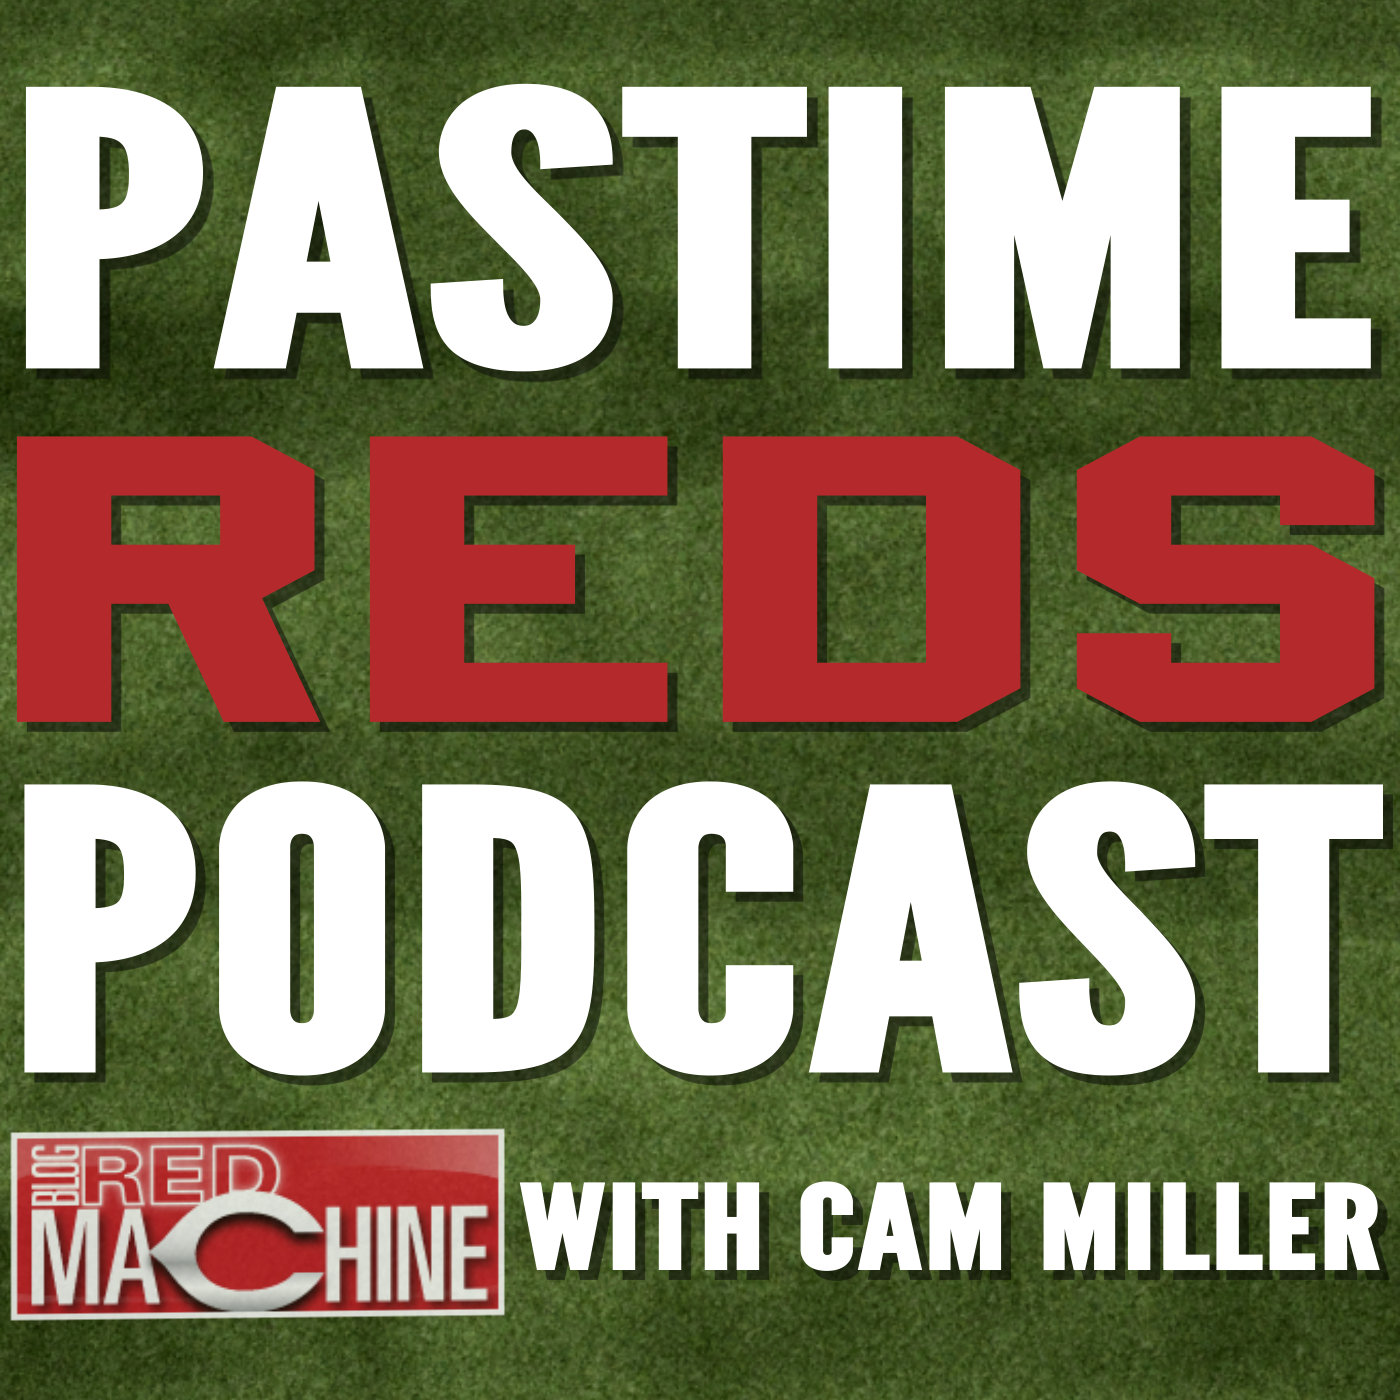 Pastime Reds Podcast by Blog Red Machine